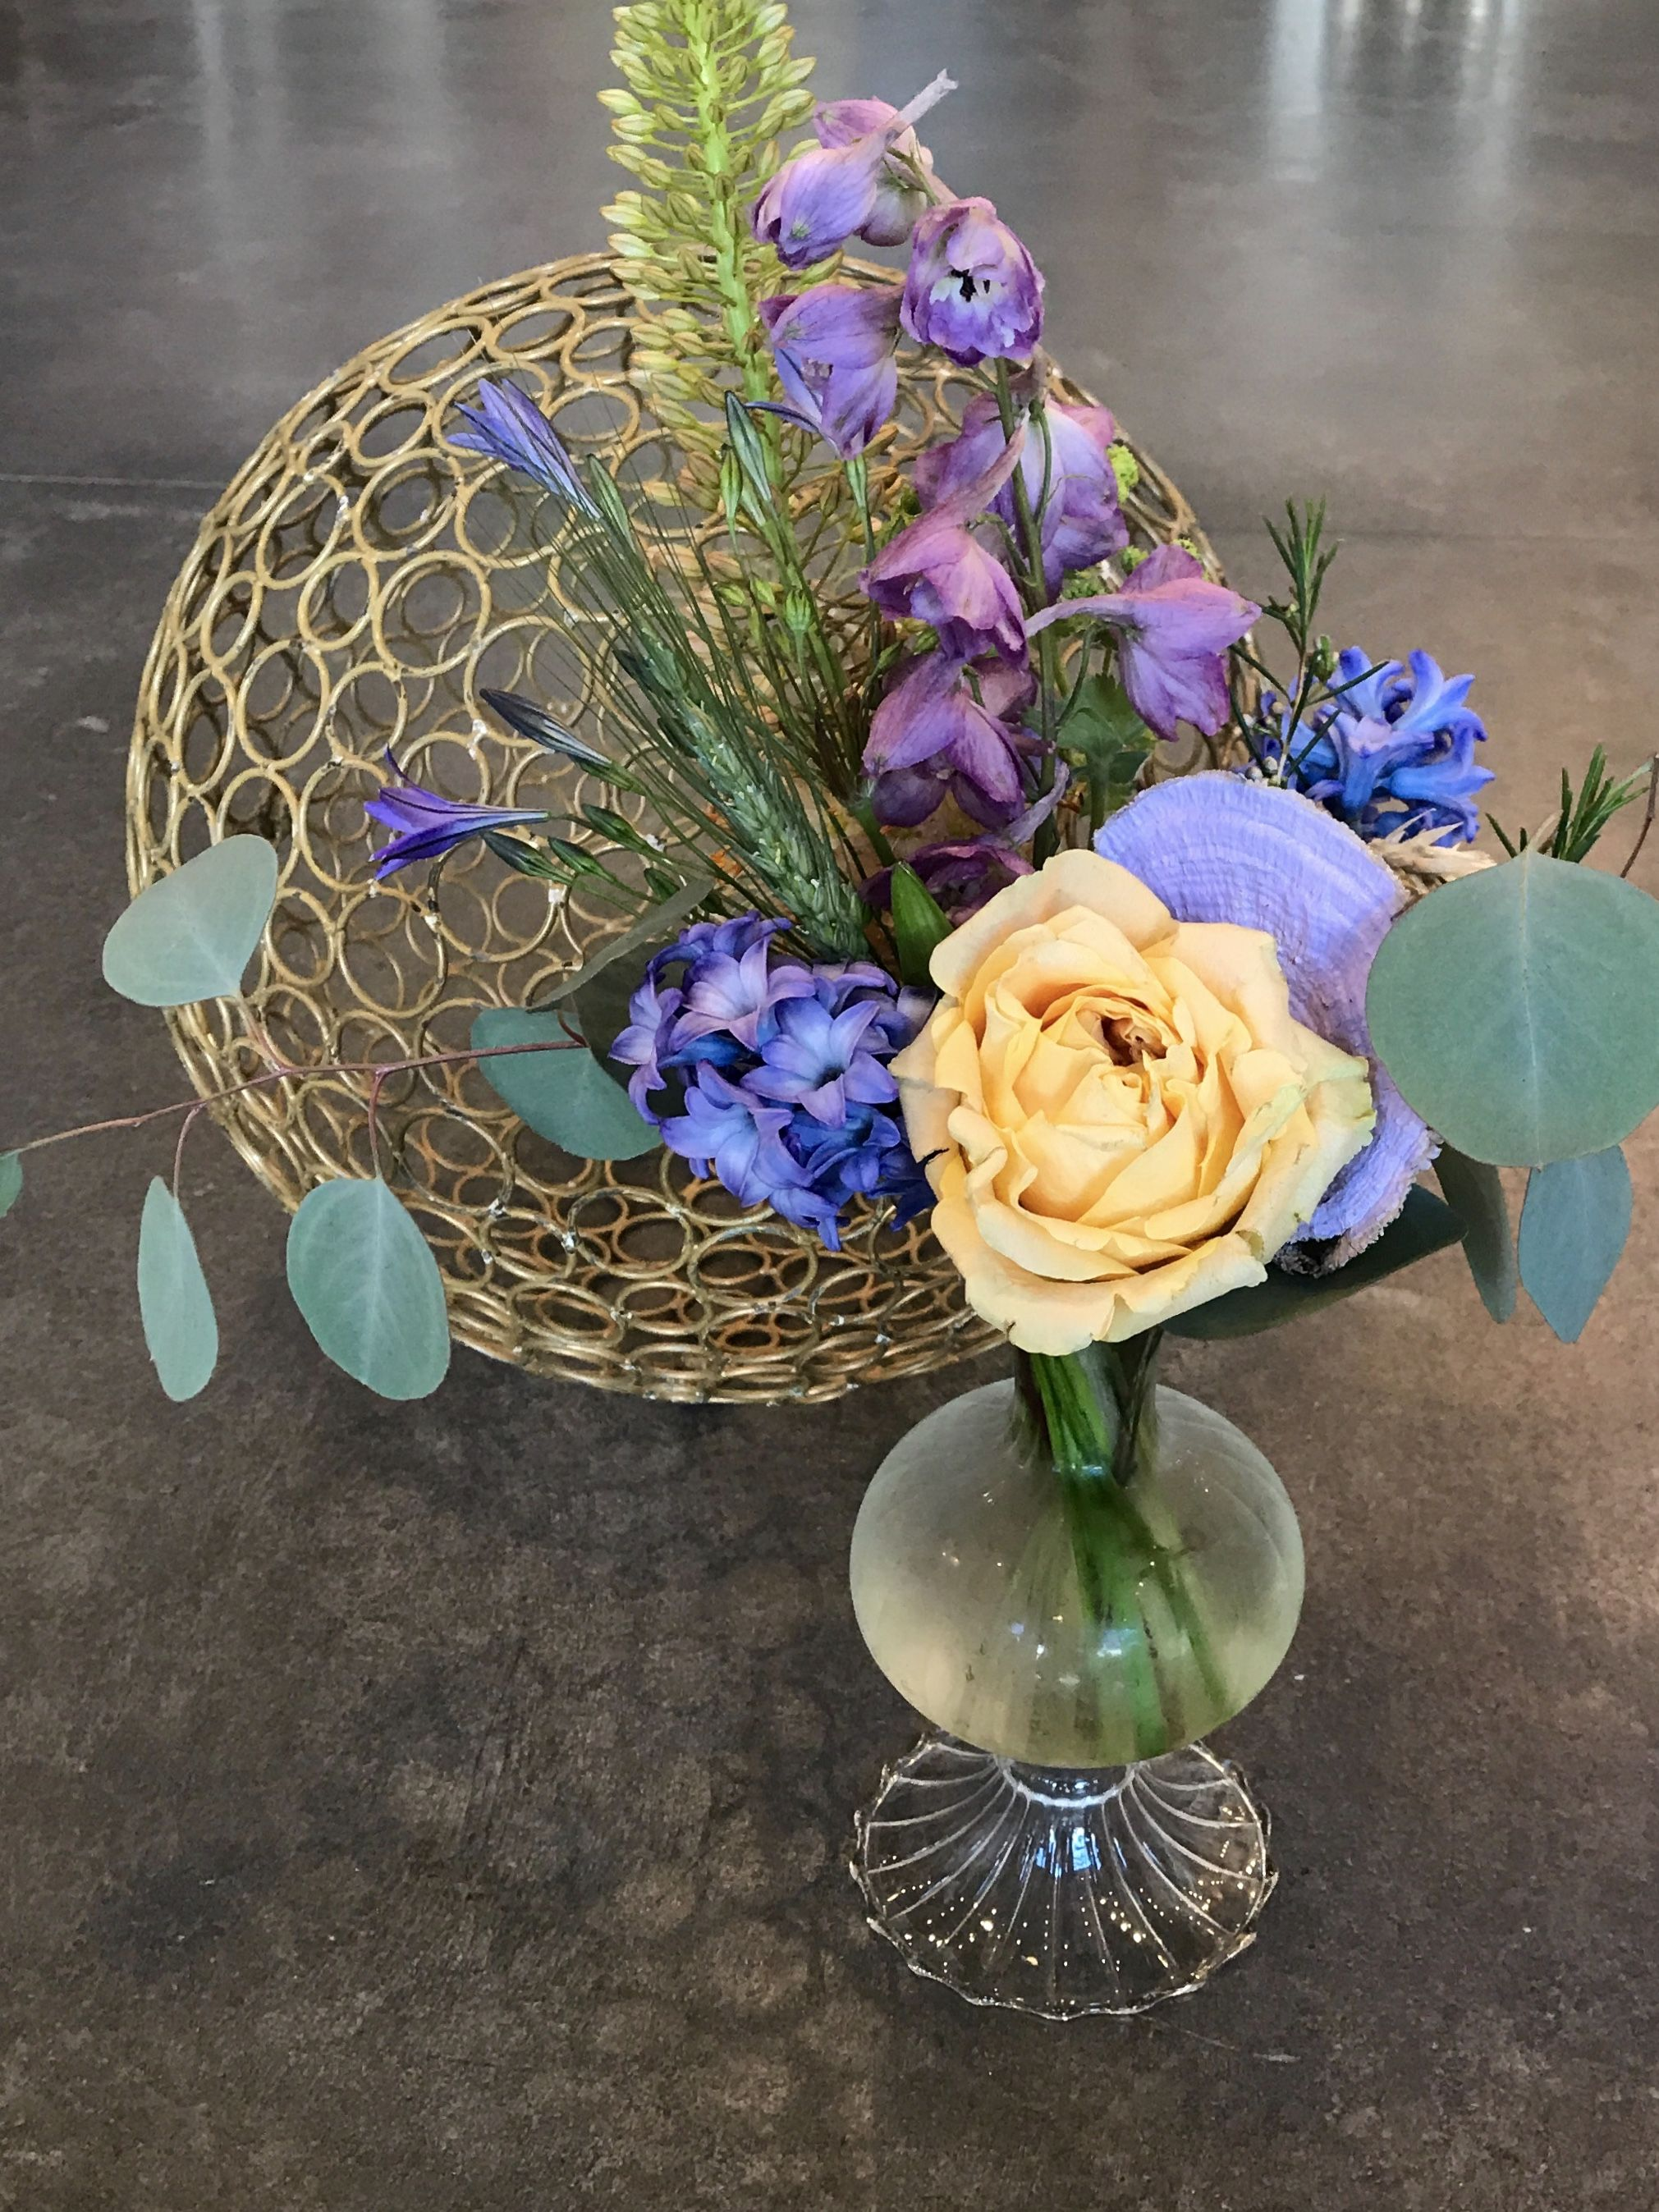 So Fresh And So Modern - #Florist #Rochesterflorist #Floristrochesterny #Summerflowers